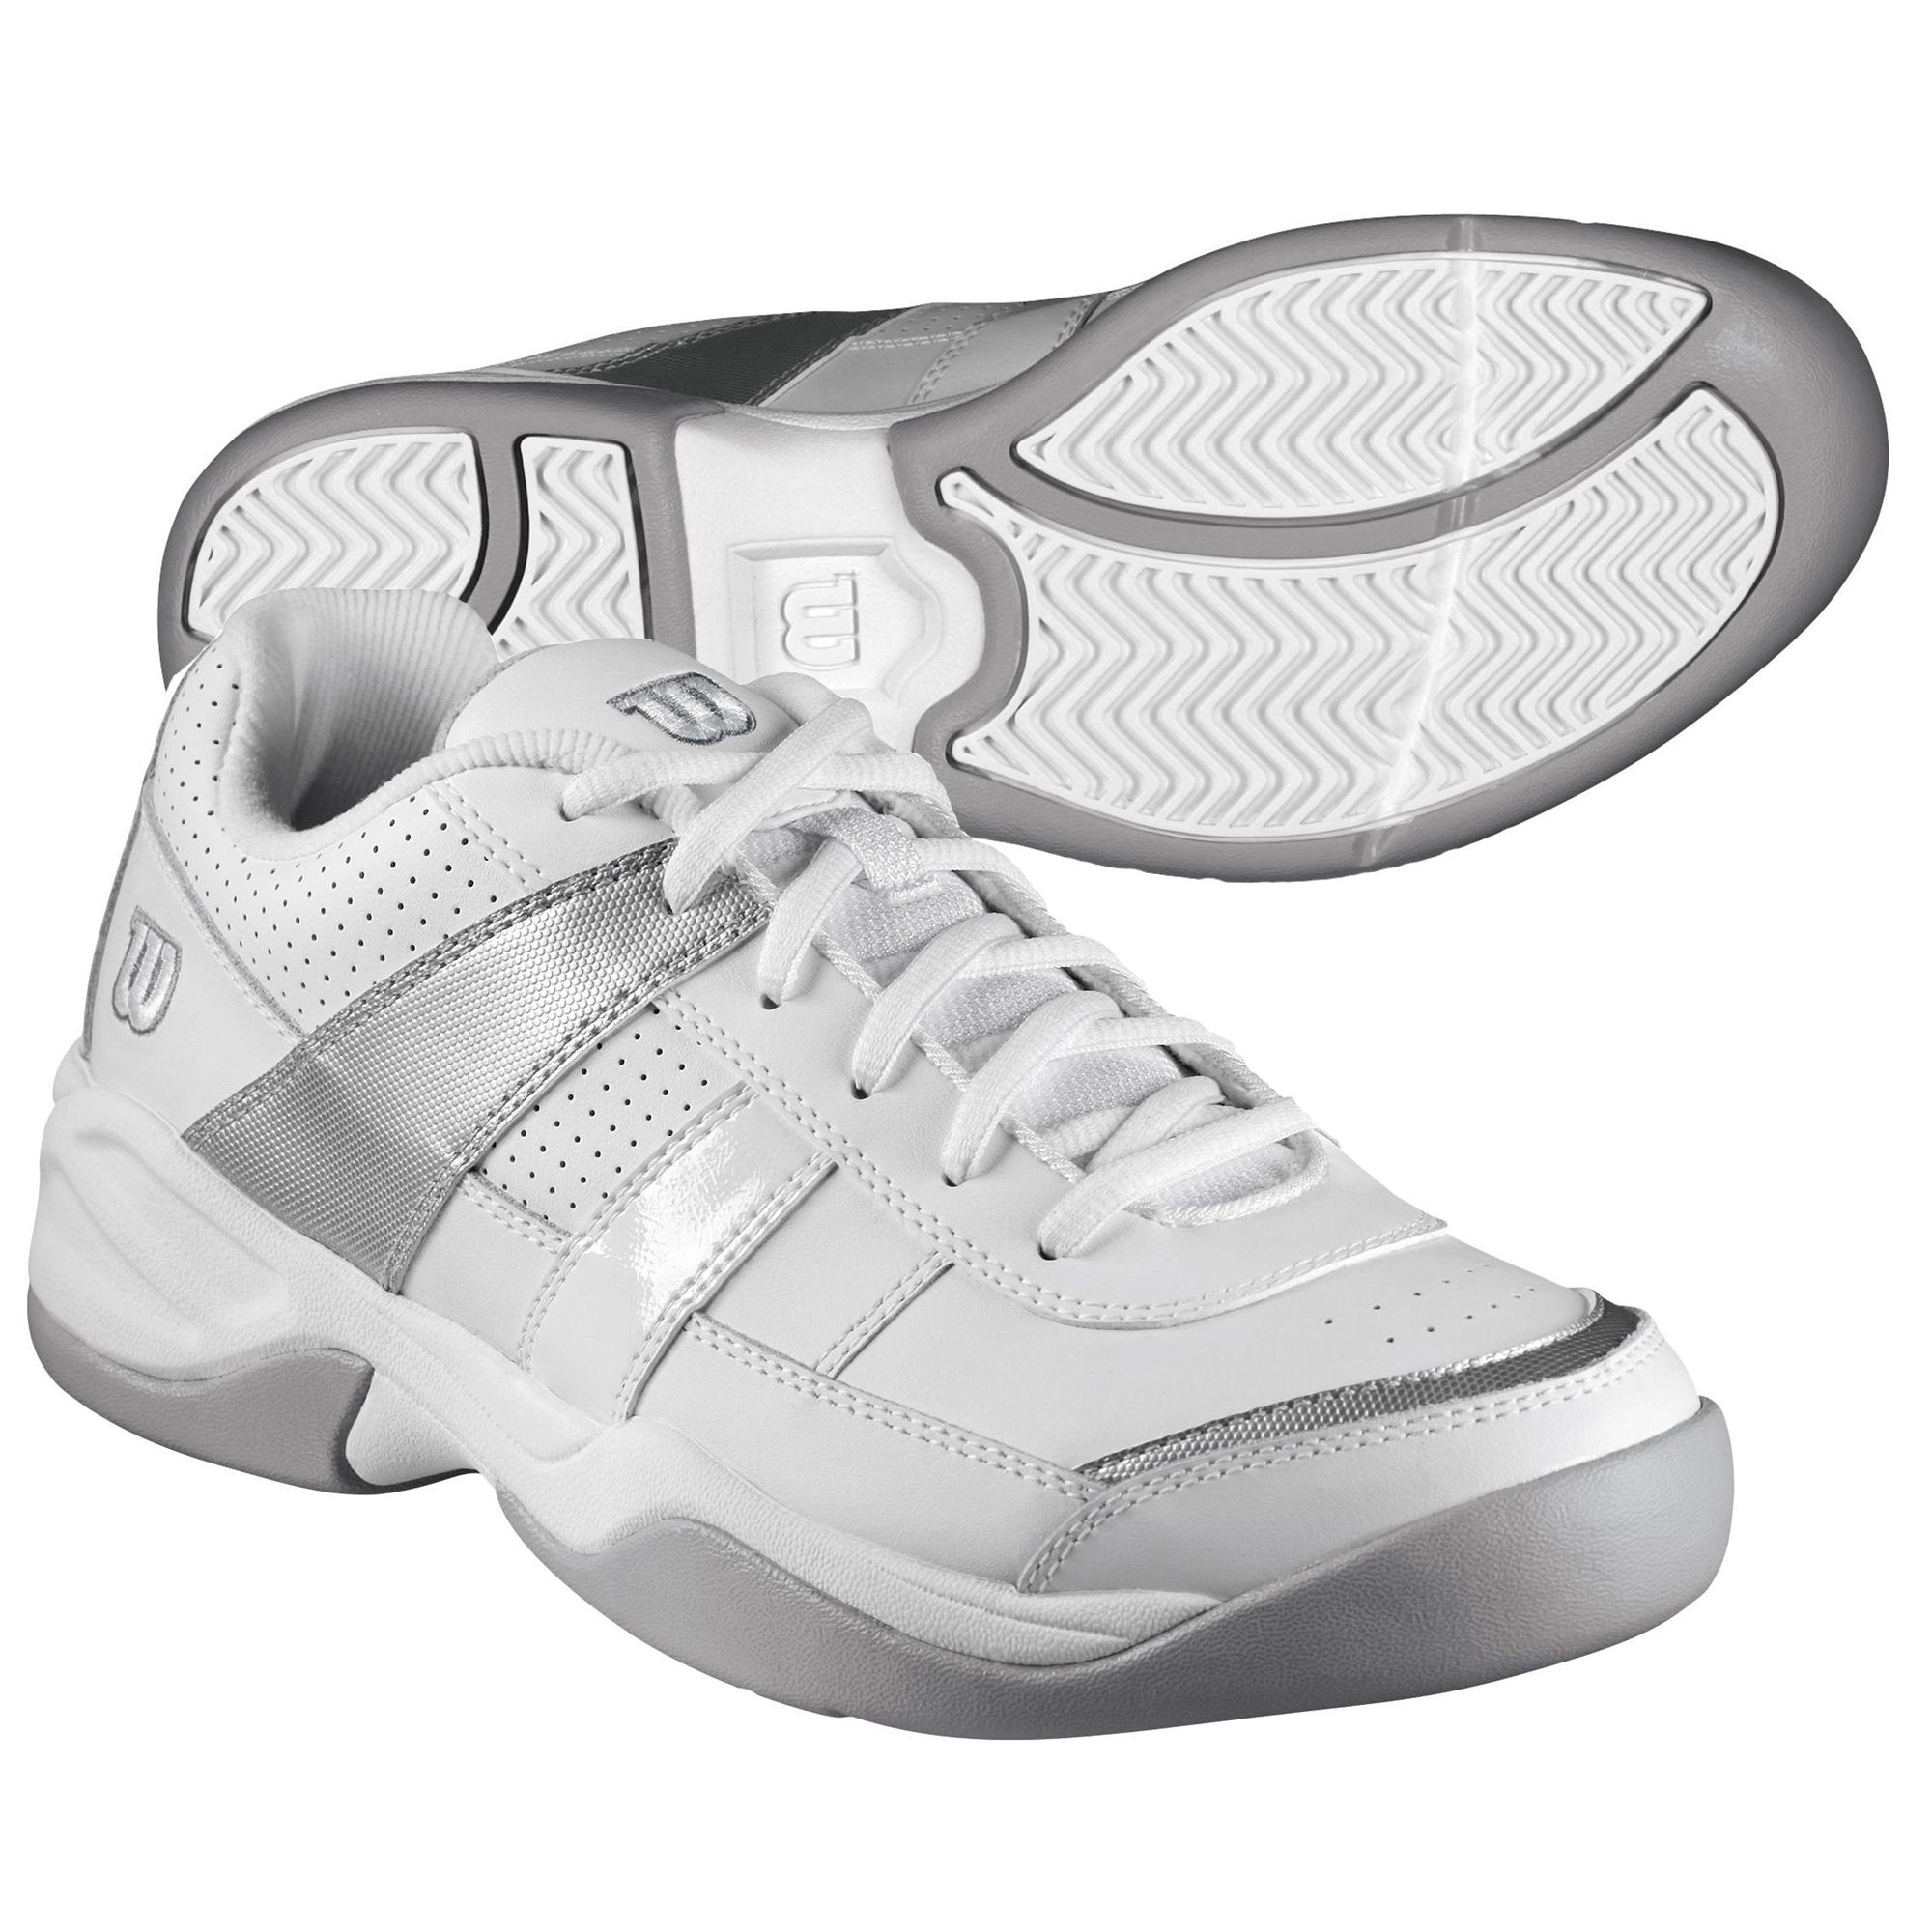 Best Tennis Court Shoes For Arch Support